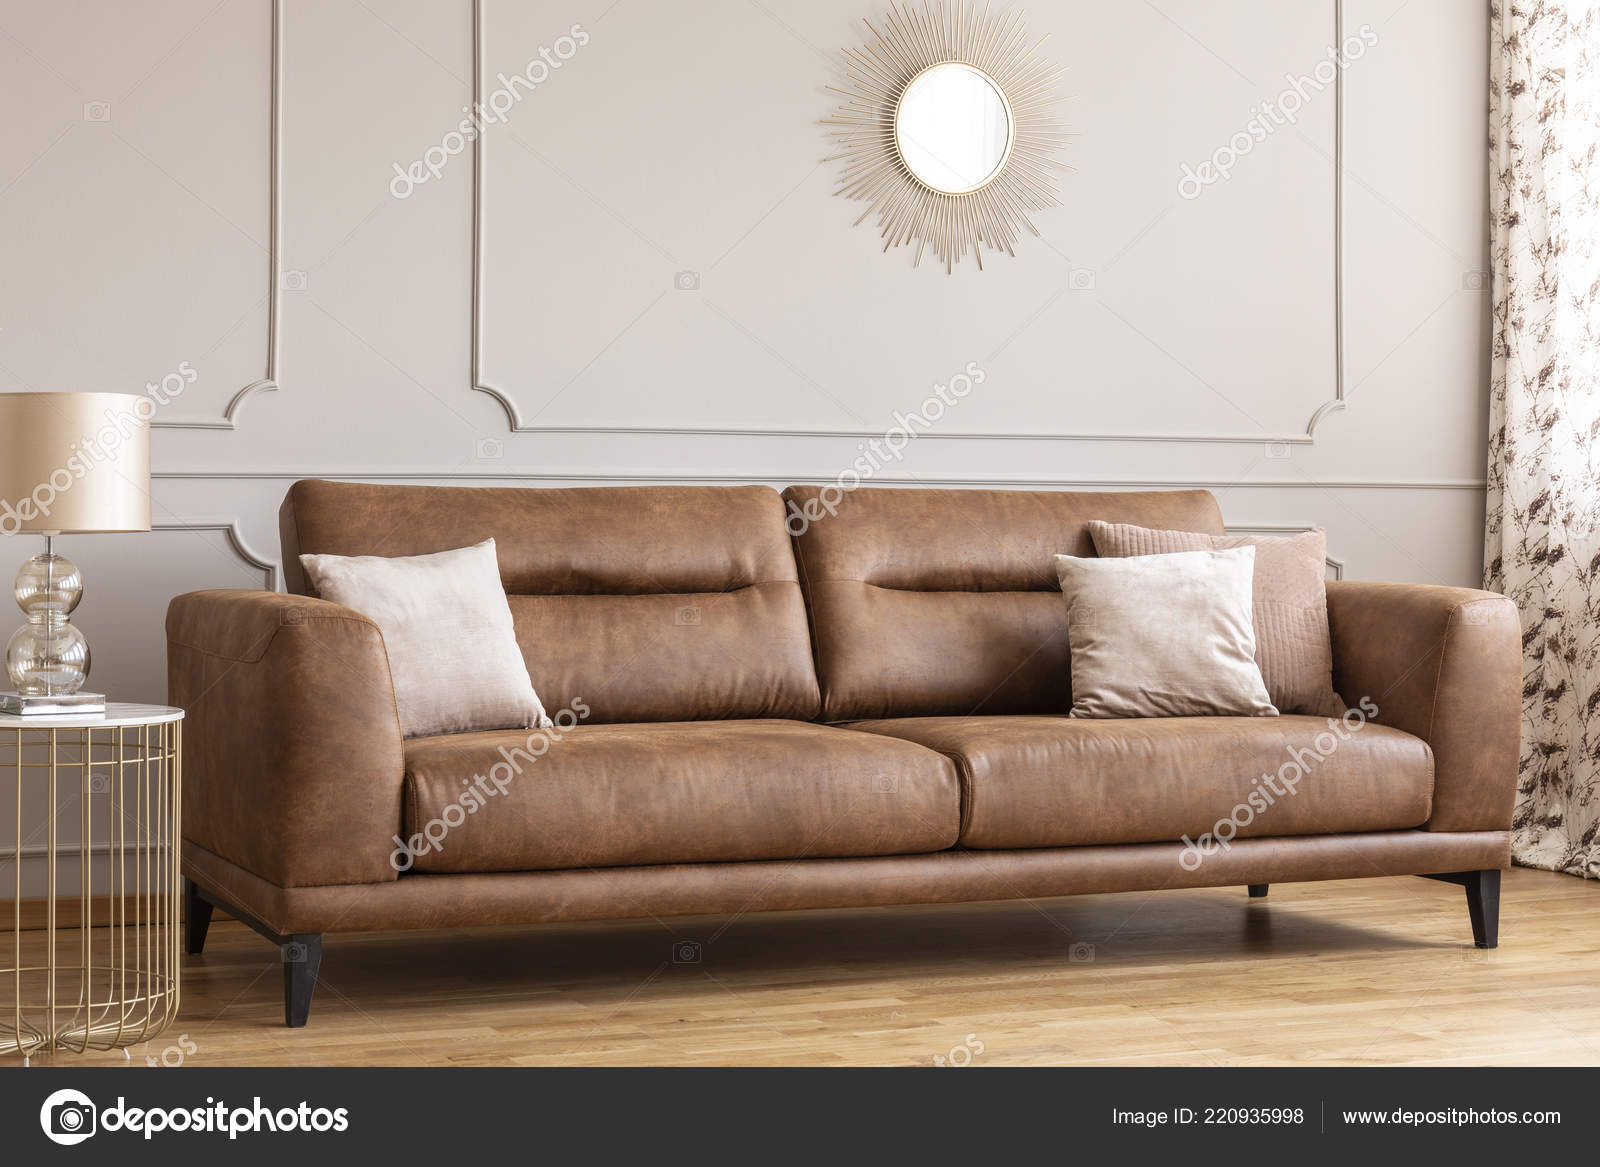 Wondrous Mirror Leather Couch Pillows Grey Living Room Interior Gold Alphanode Cool Chair Designs And Ideas Alphanodeonline